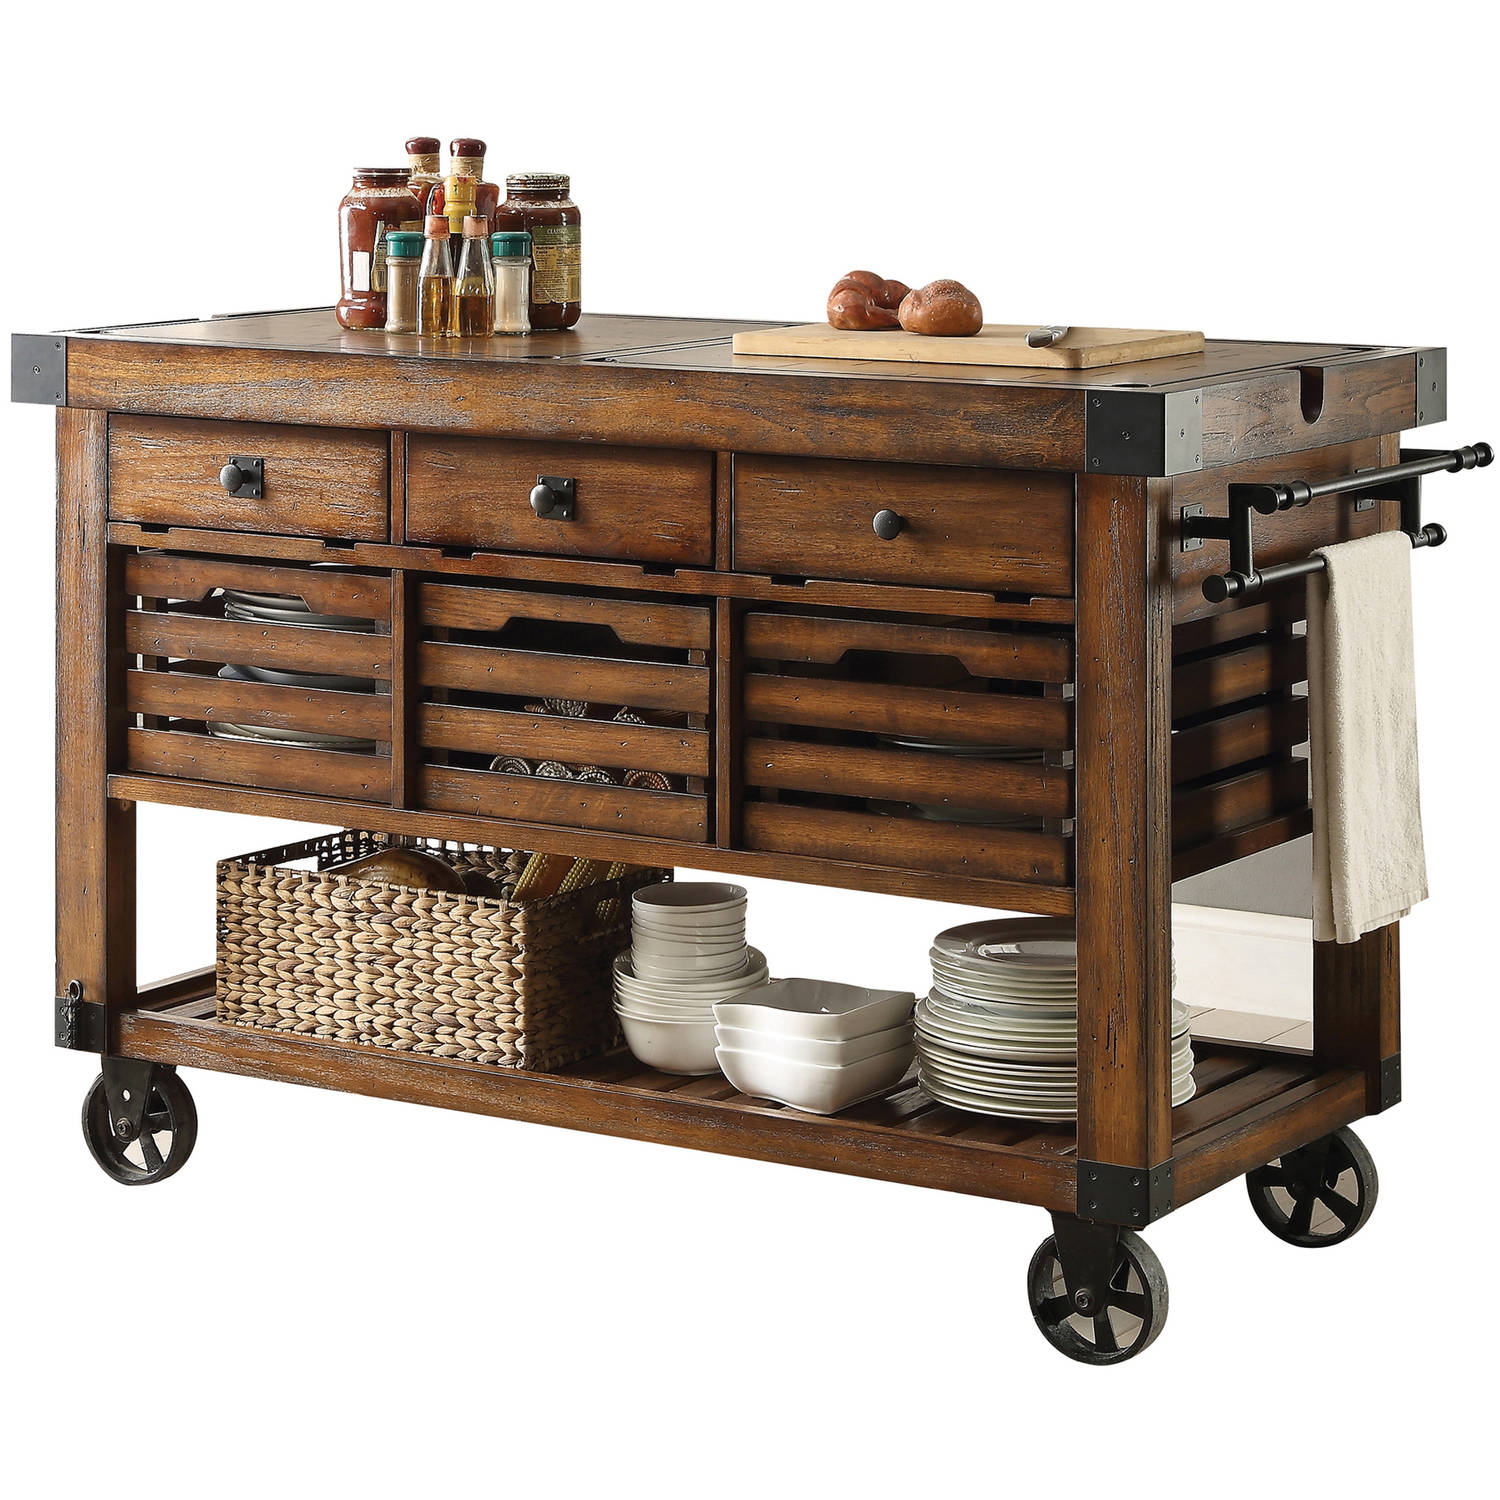 ACME Kaif Kitchen Cart, Distress Chestnut by Acme Furniture